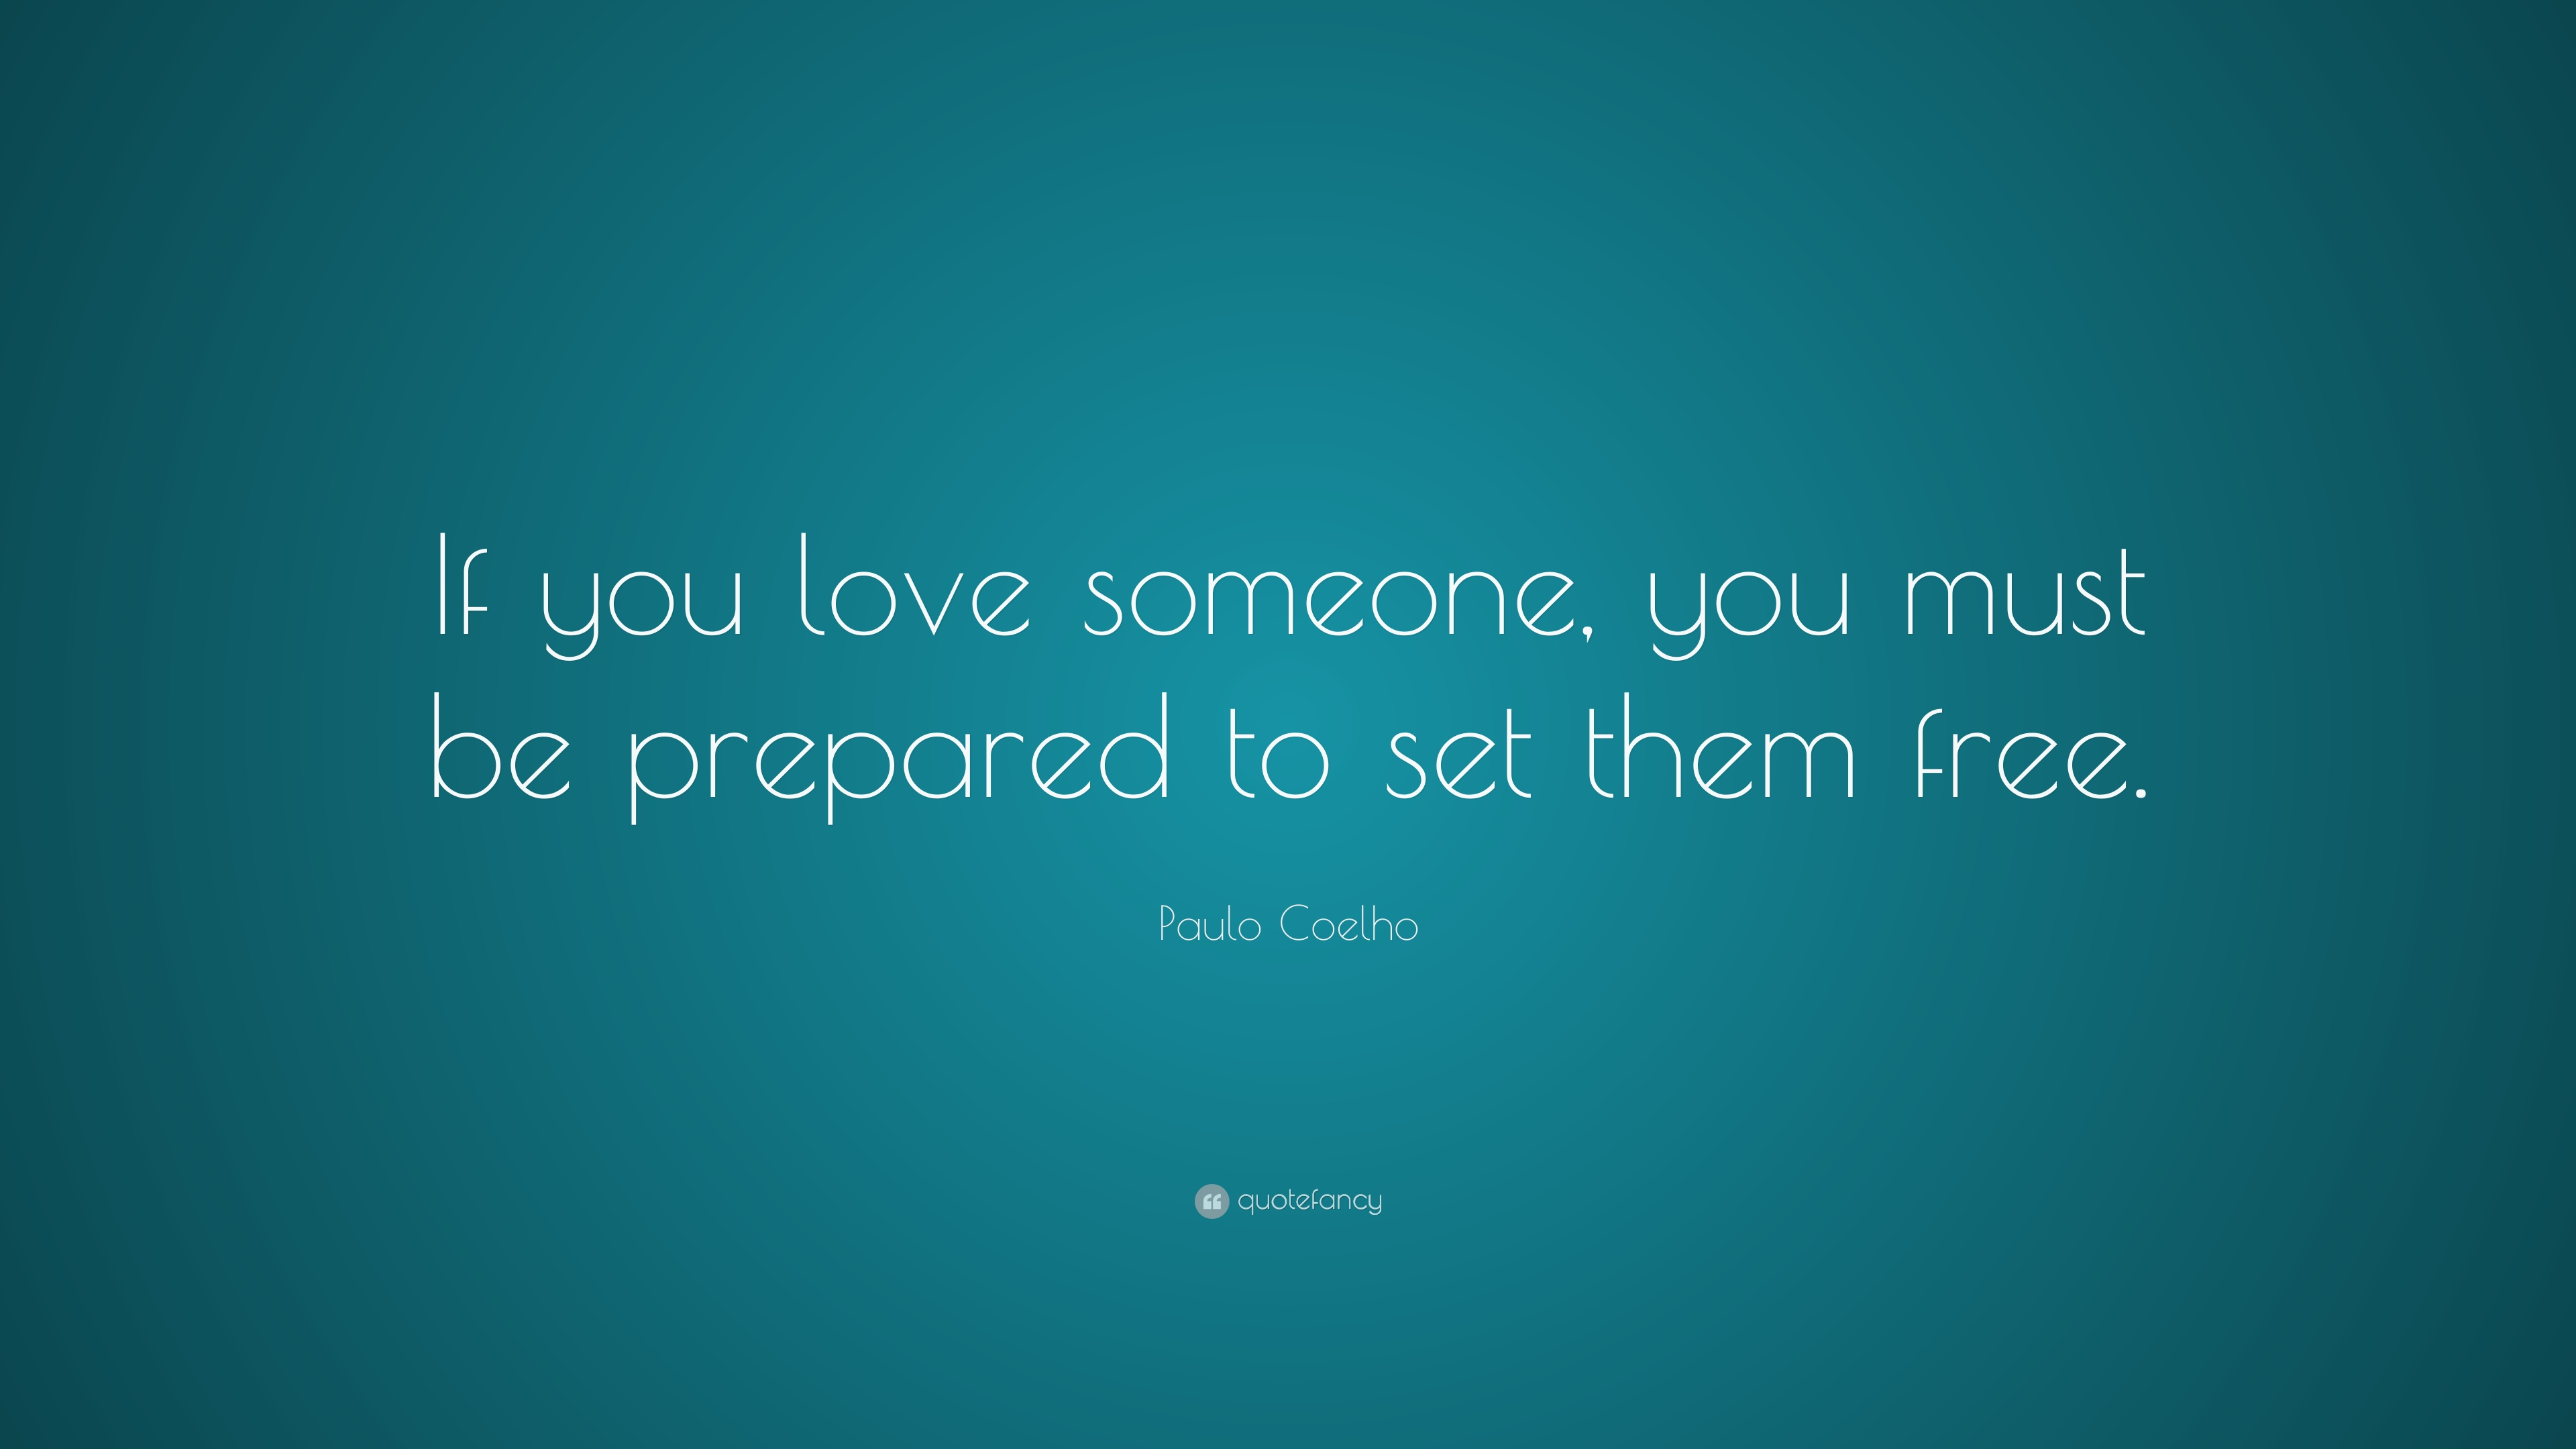 Paulo Coelho Quote If You Love Someone You Must Be Prepared To